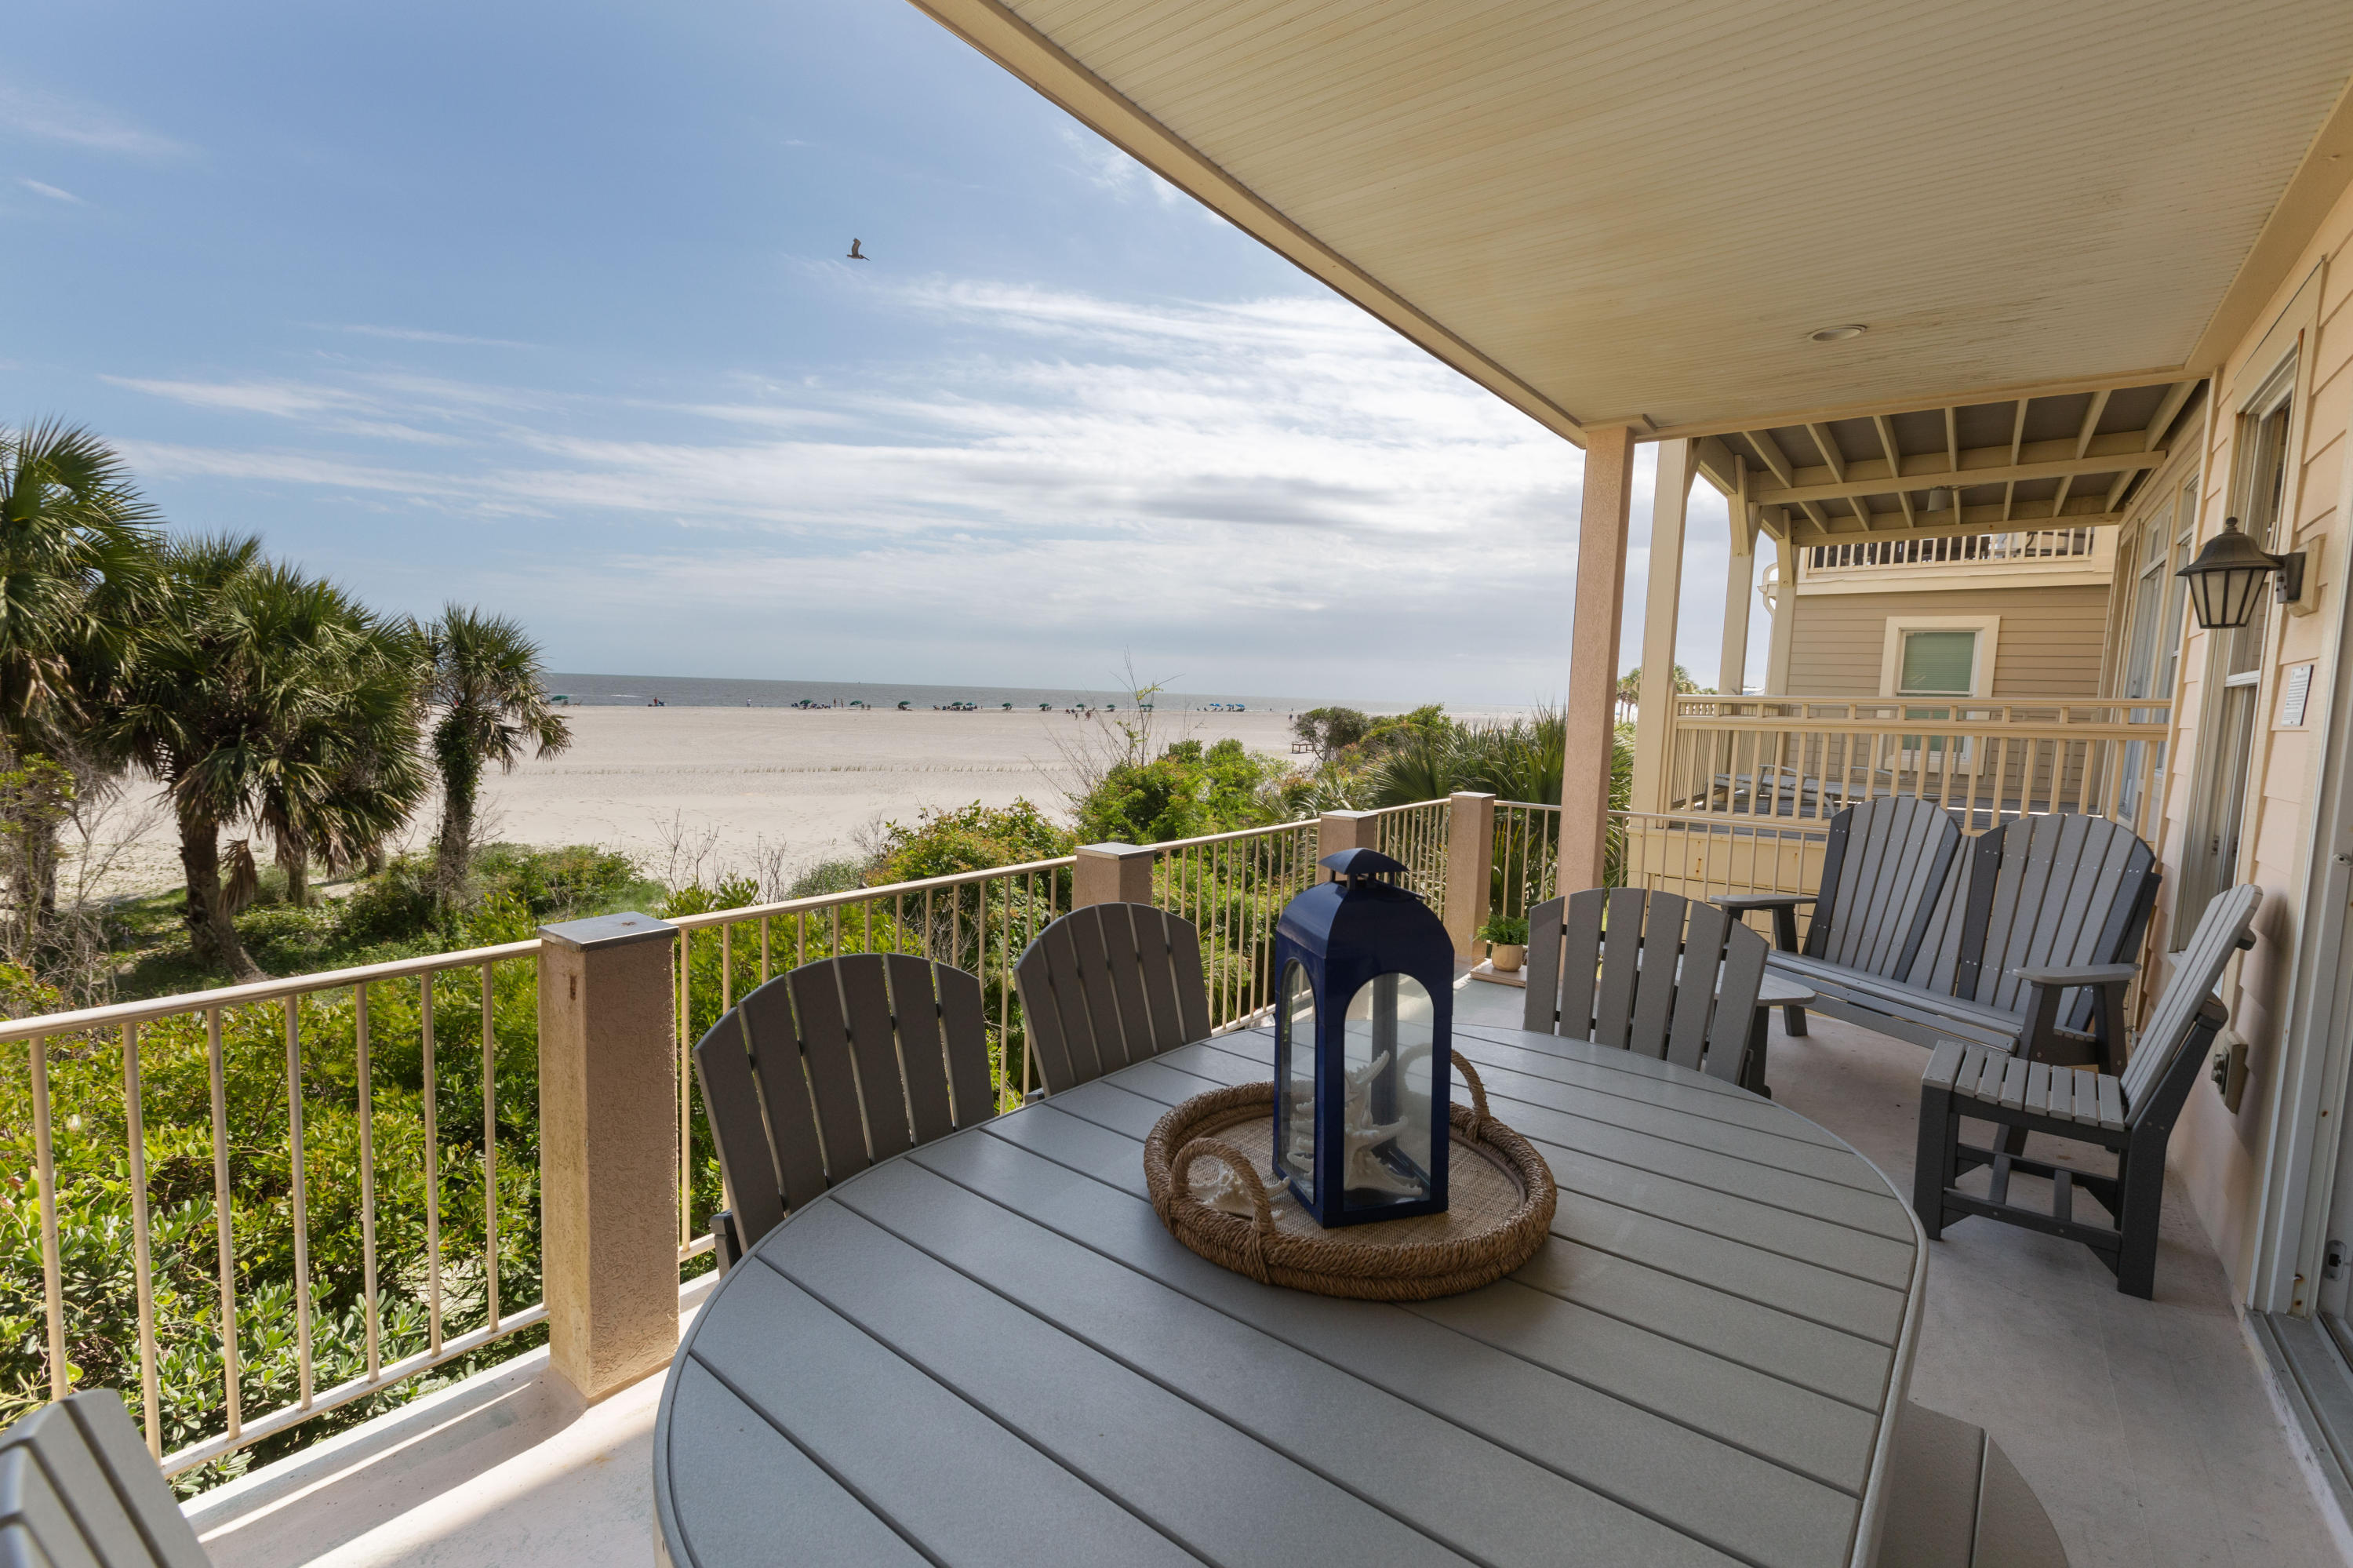 64 Grand Pavilion Isle Of Palms, SC 29451